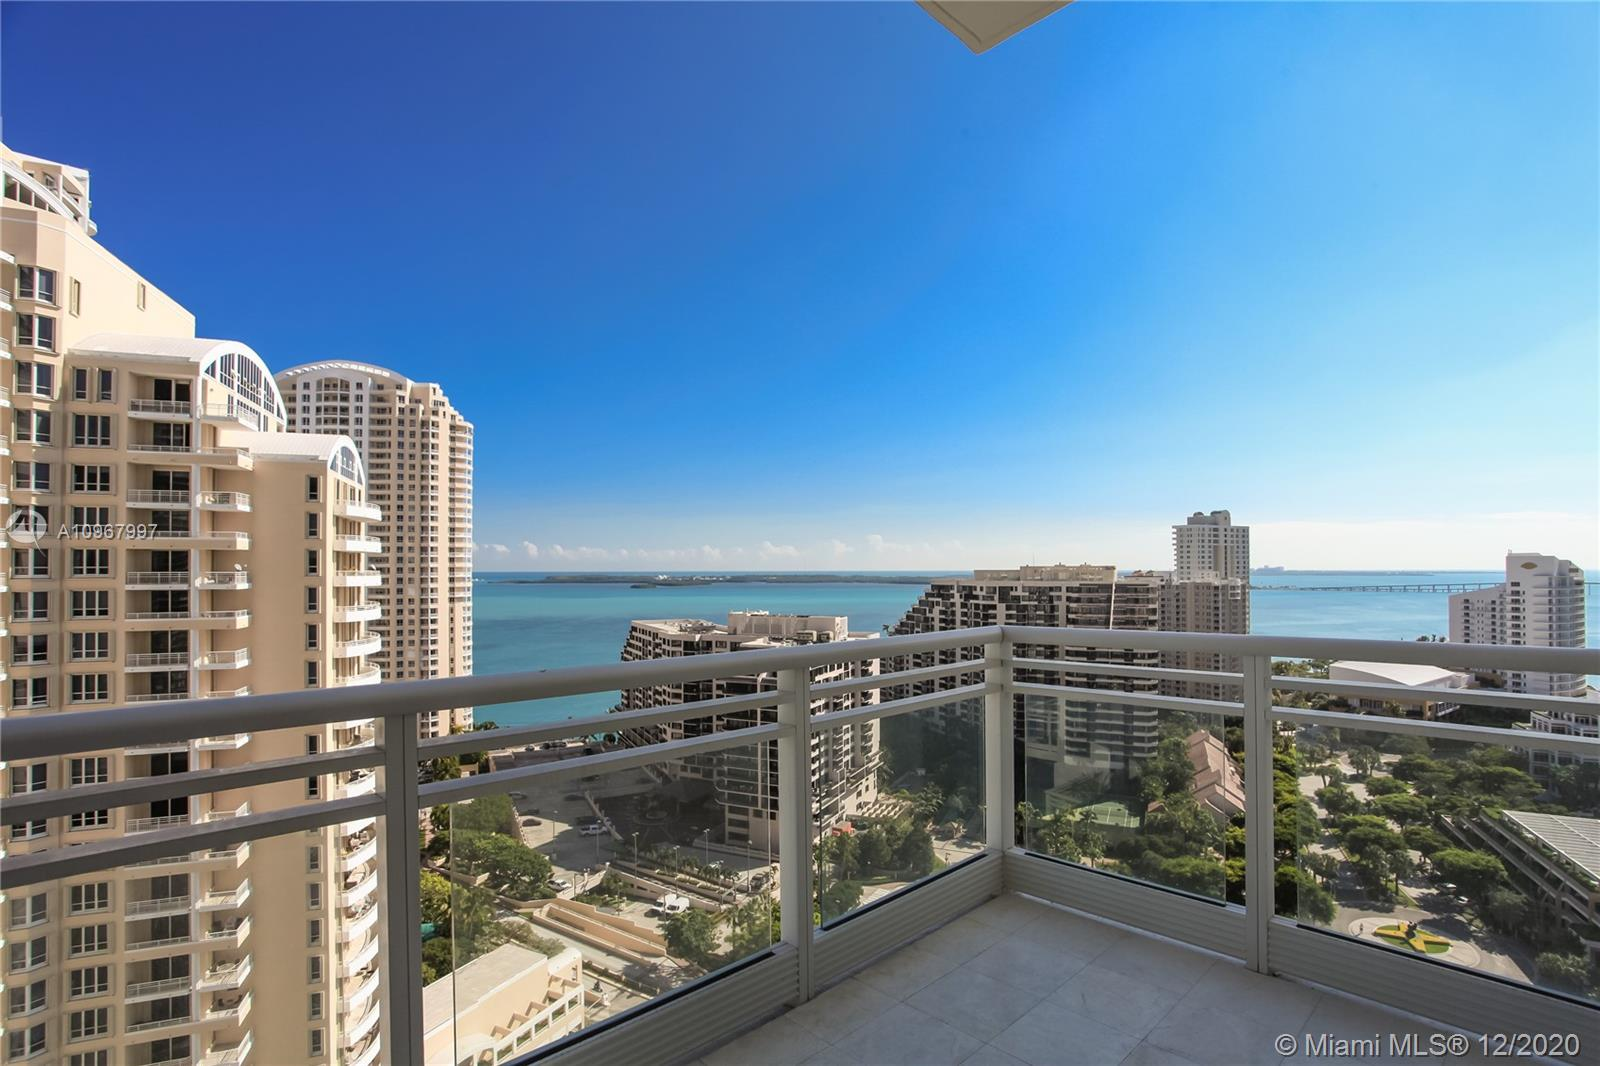 Come see this sensational condo on Brickell Key Island at the luxurious Asia Condo.  Take the elevator to your very own private entryway.  As you enter your oasis, you discover 12-foot ceilings for your 3 massive bedrooms, 4.5 baths, a gourmet kitchen with Miele appliances, 4 balconies with expansive views, maids quarters, and so much more.